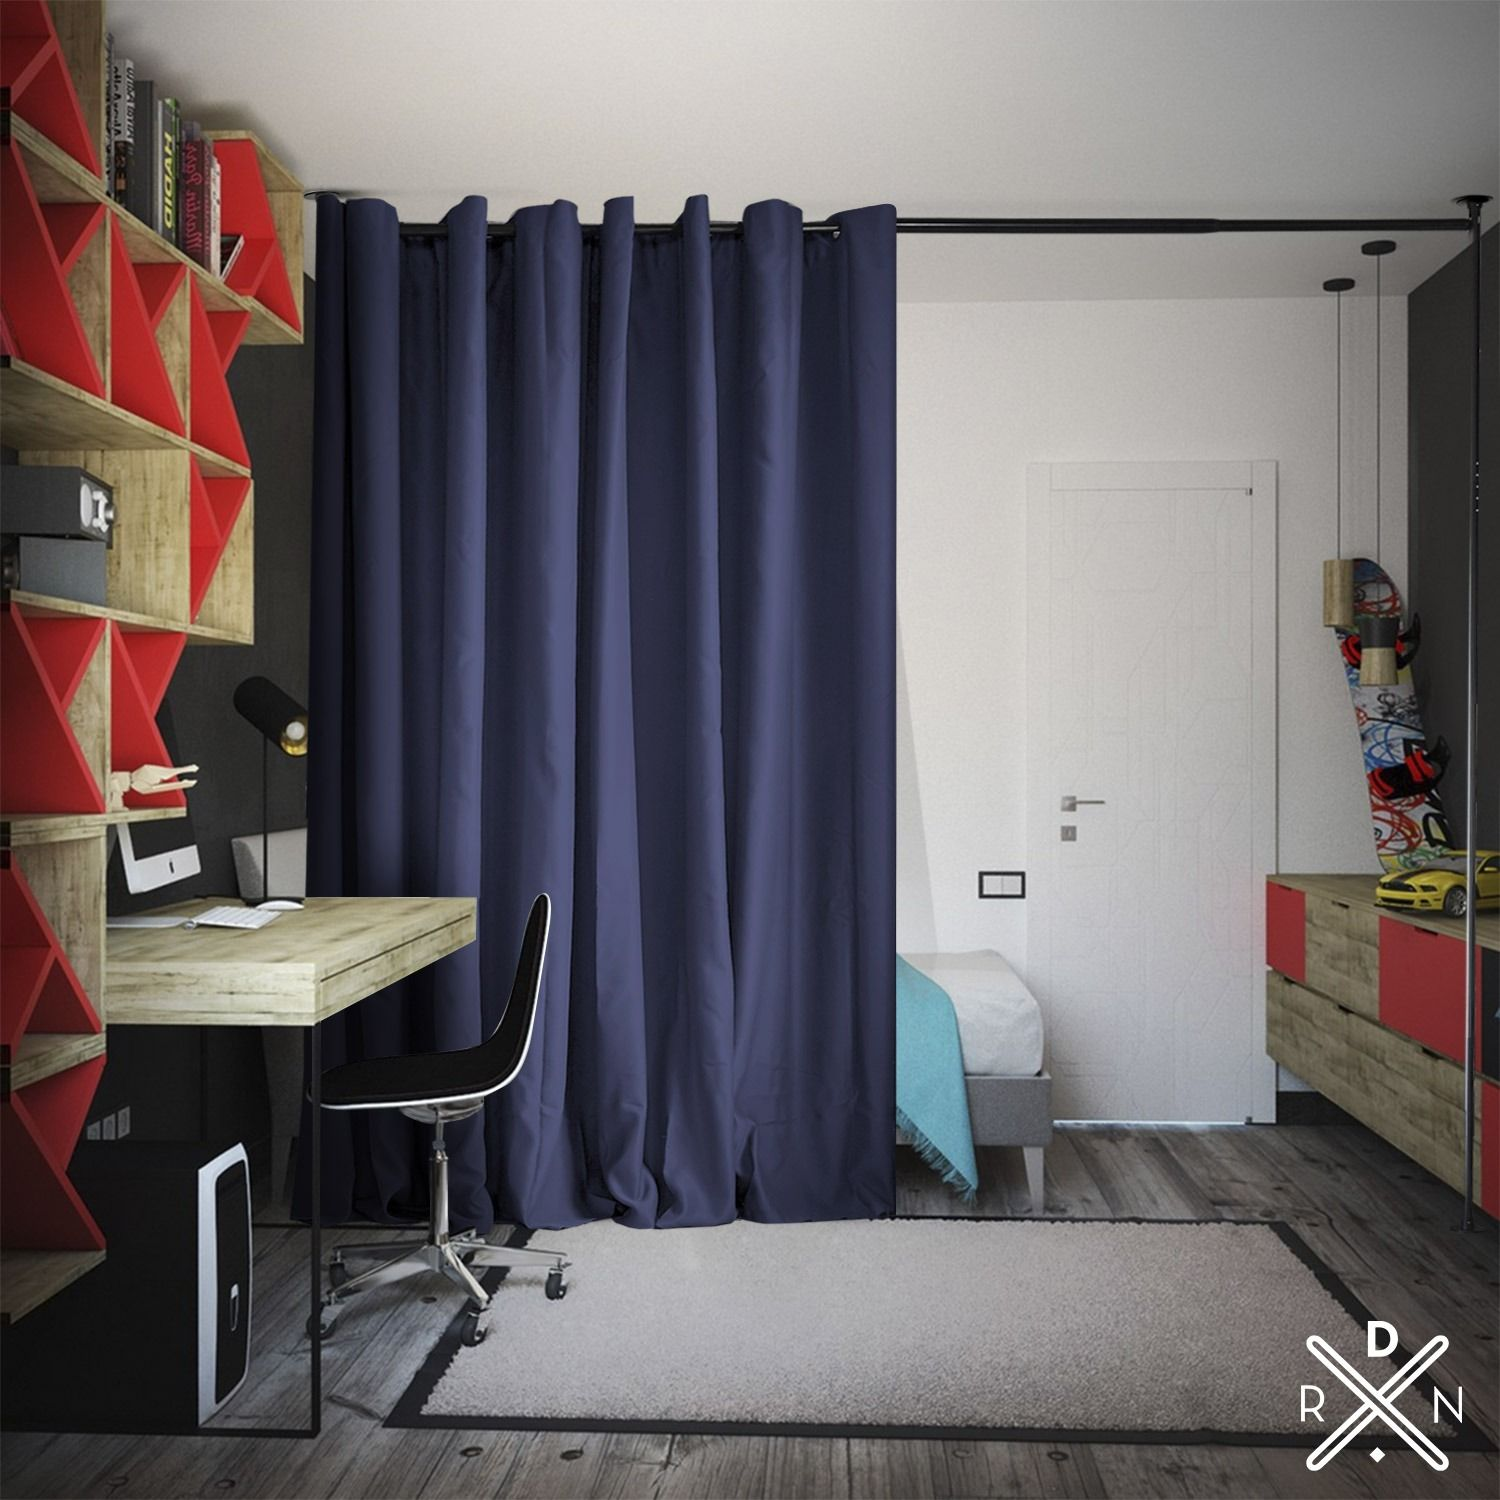 Need Privacy Our Room Divider Kits Are Easy To Set Up Temporary